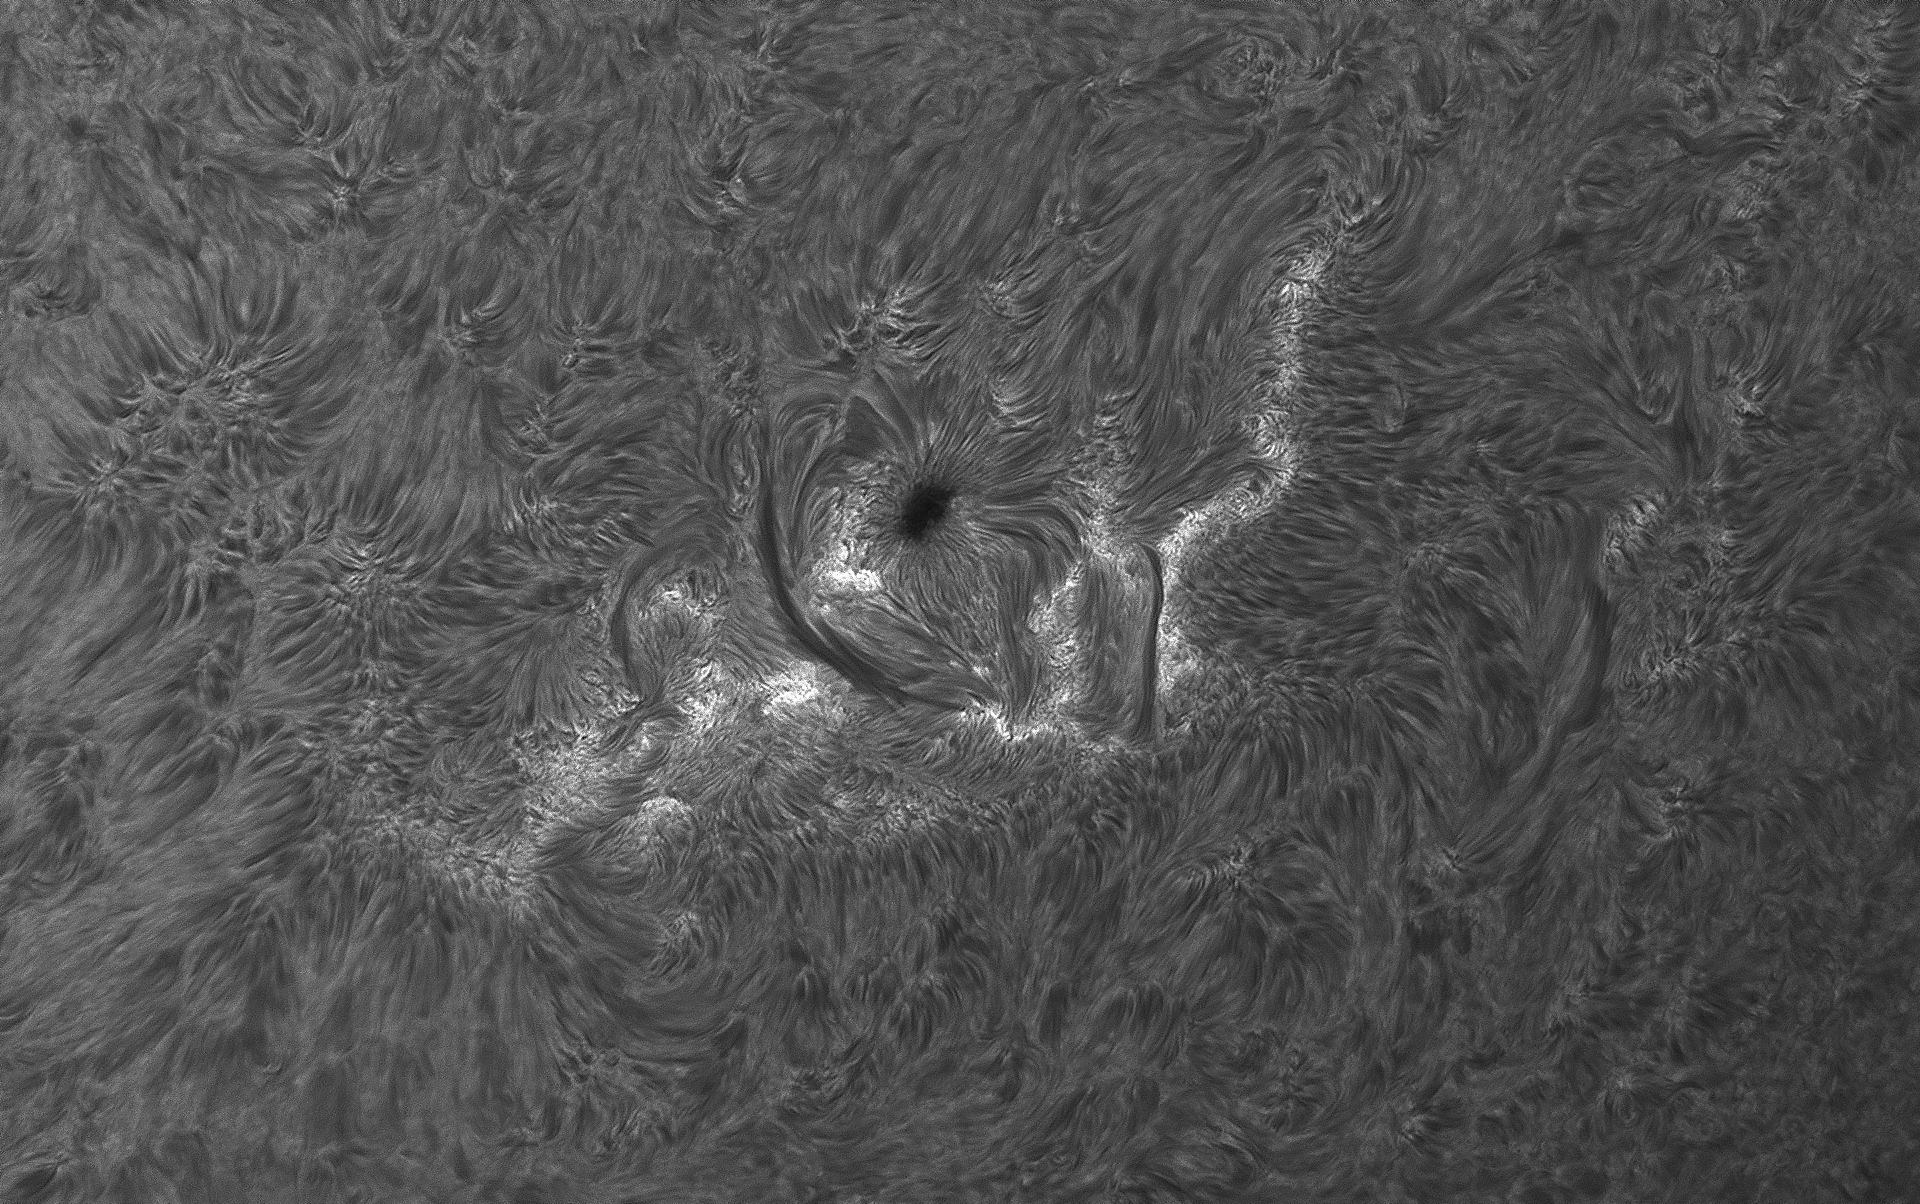 Sun in Ha Band with HaT telescope